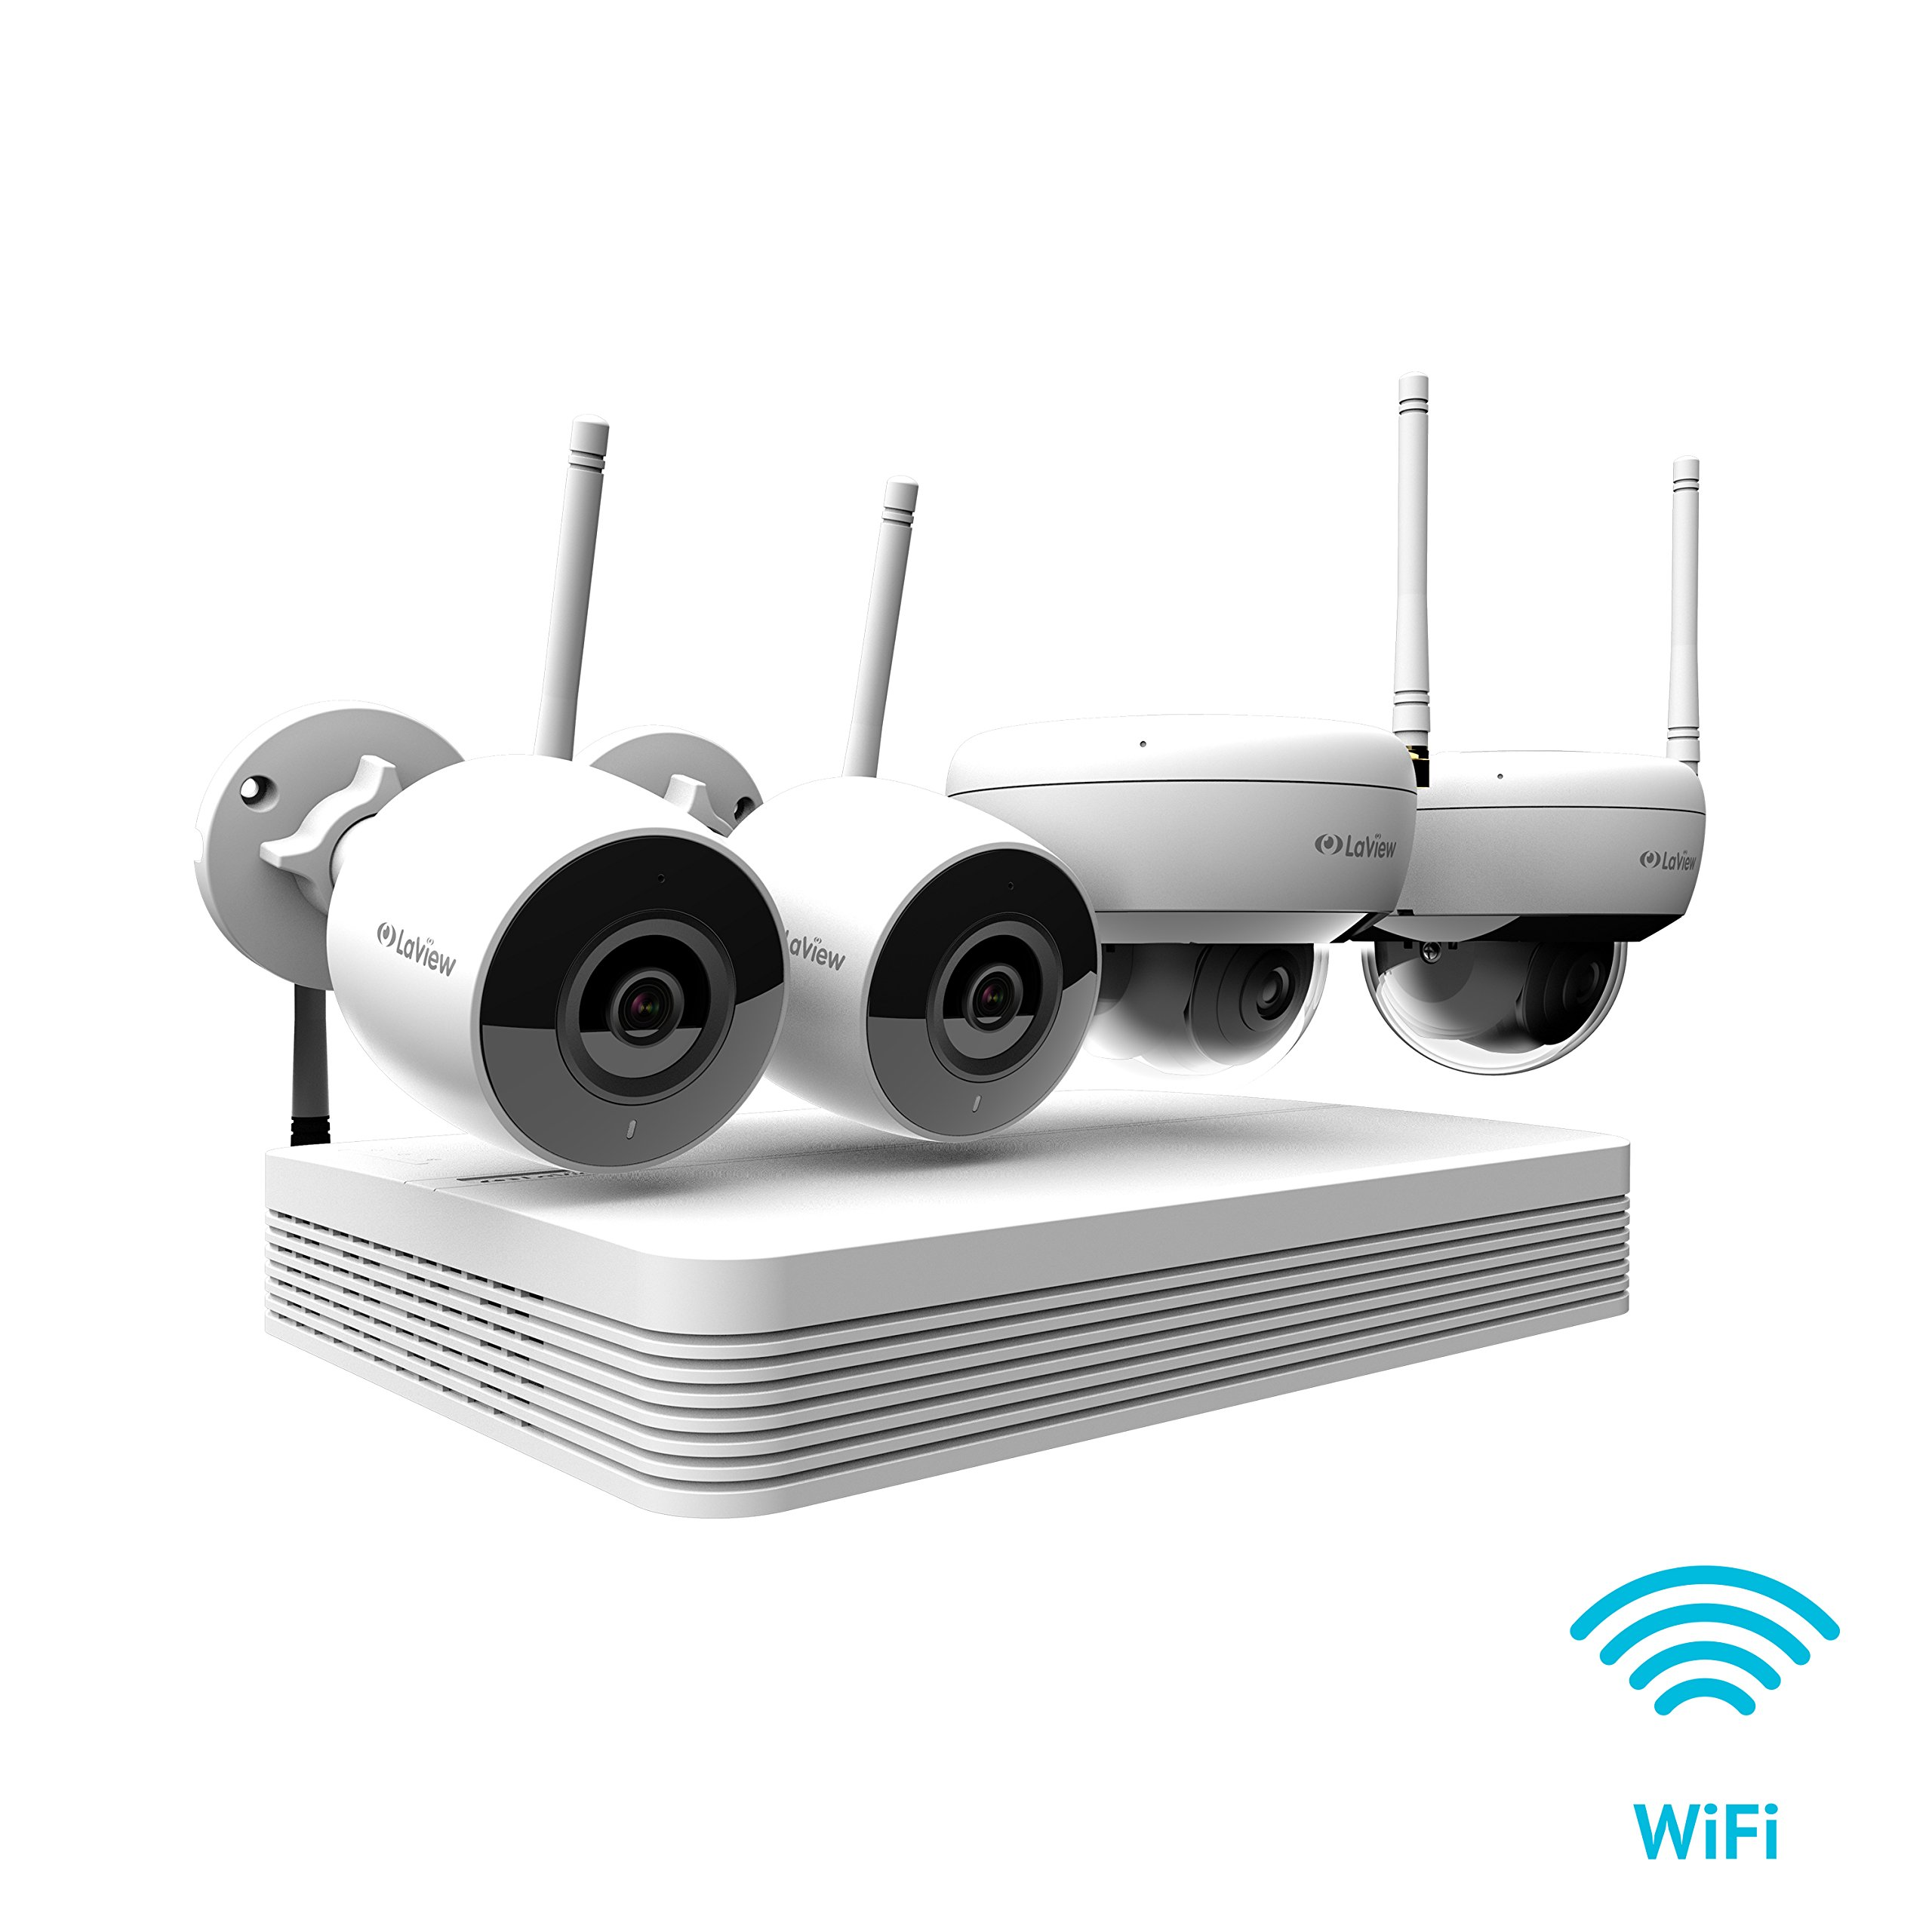 LaView Wi-Fi Wireless Security Camera System 8 Channel 1080P HD Audio & Video H.265 NVR 2TB, 2xbullet & 2X Dome Indoor/Outdoor Wi-Fi Camera,500Ft WiFi Range,Mobile Alerts